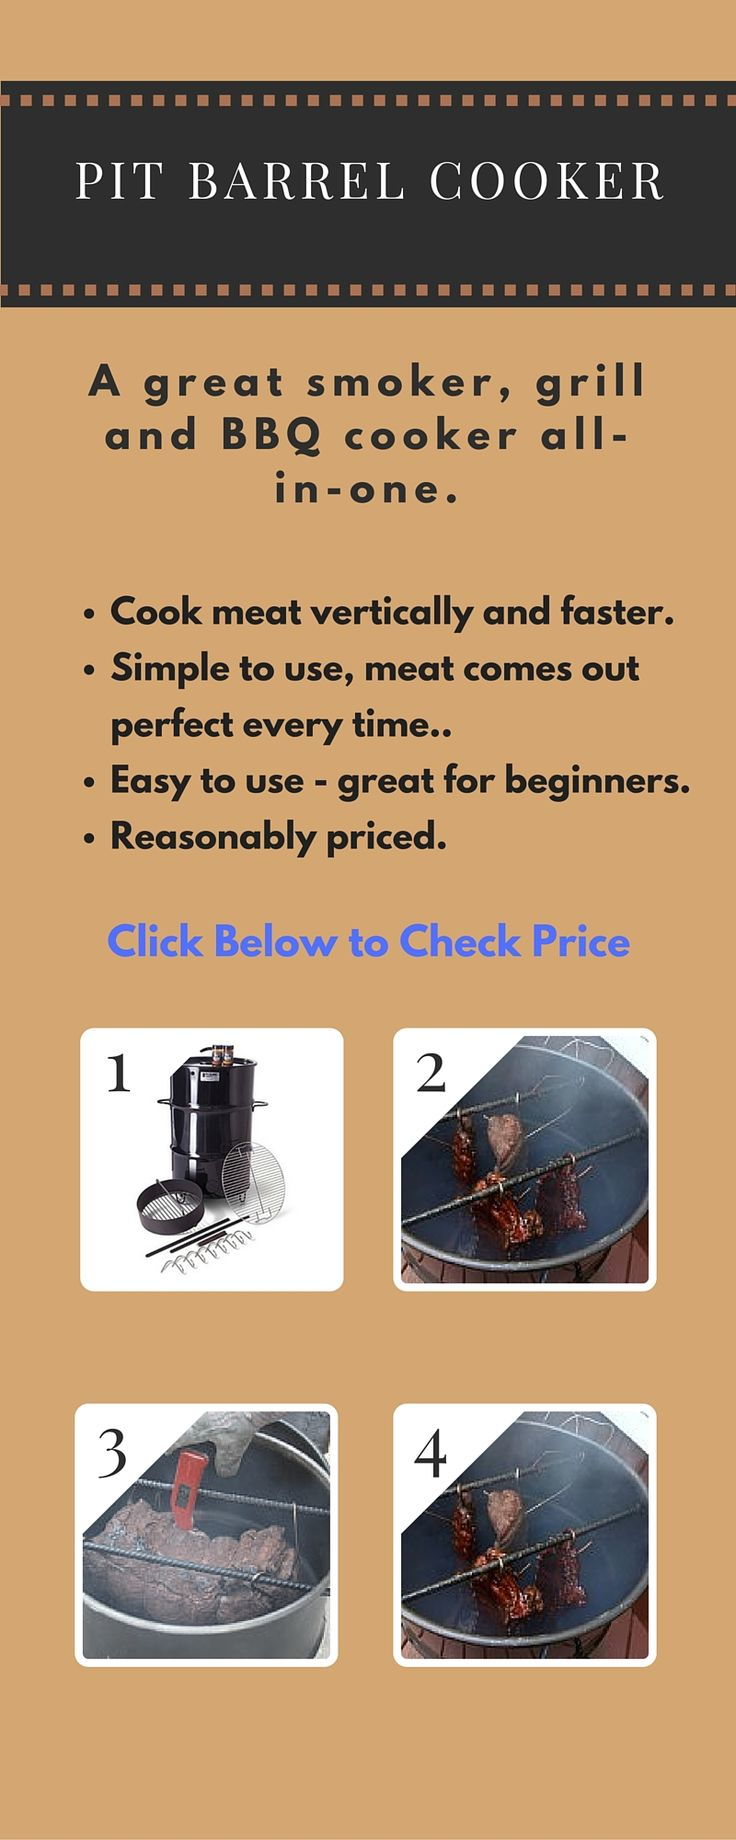 The Pit Barrel Cooker is a grill, smoker and BBQ all-in-one. Outstanding reviews. Click to check price.